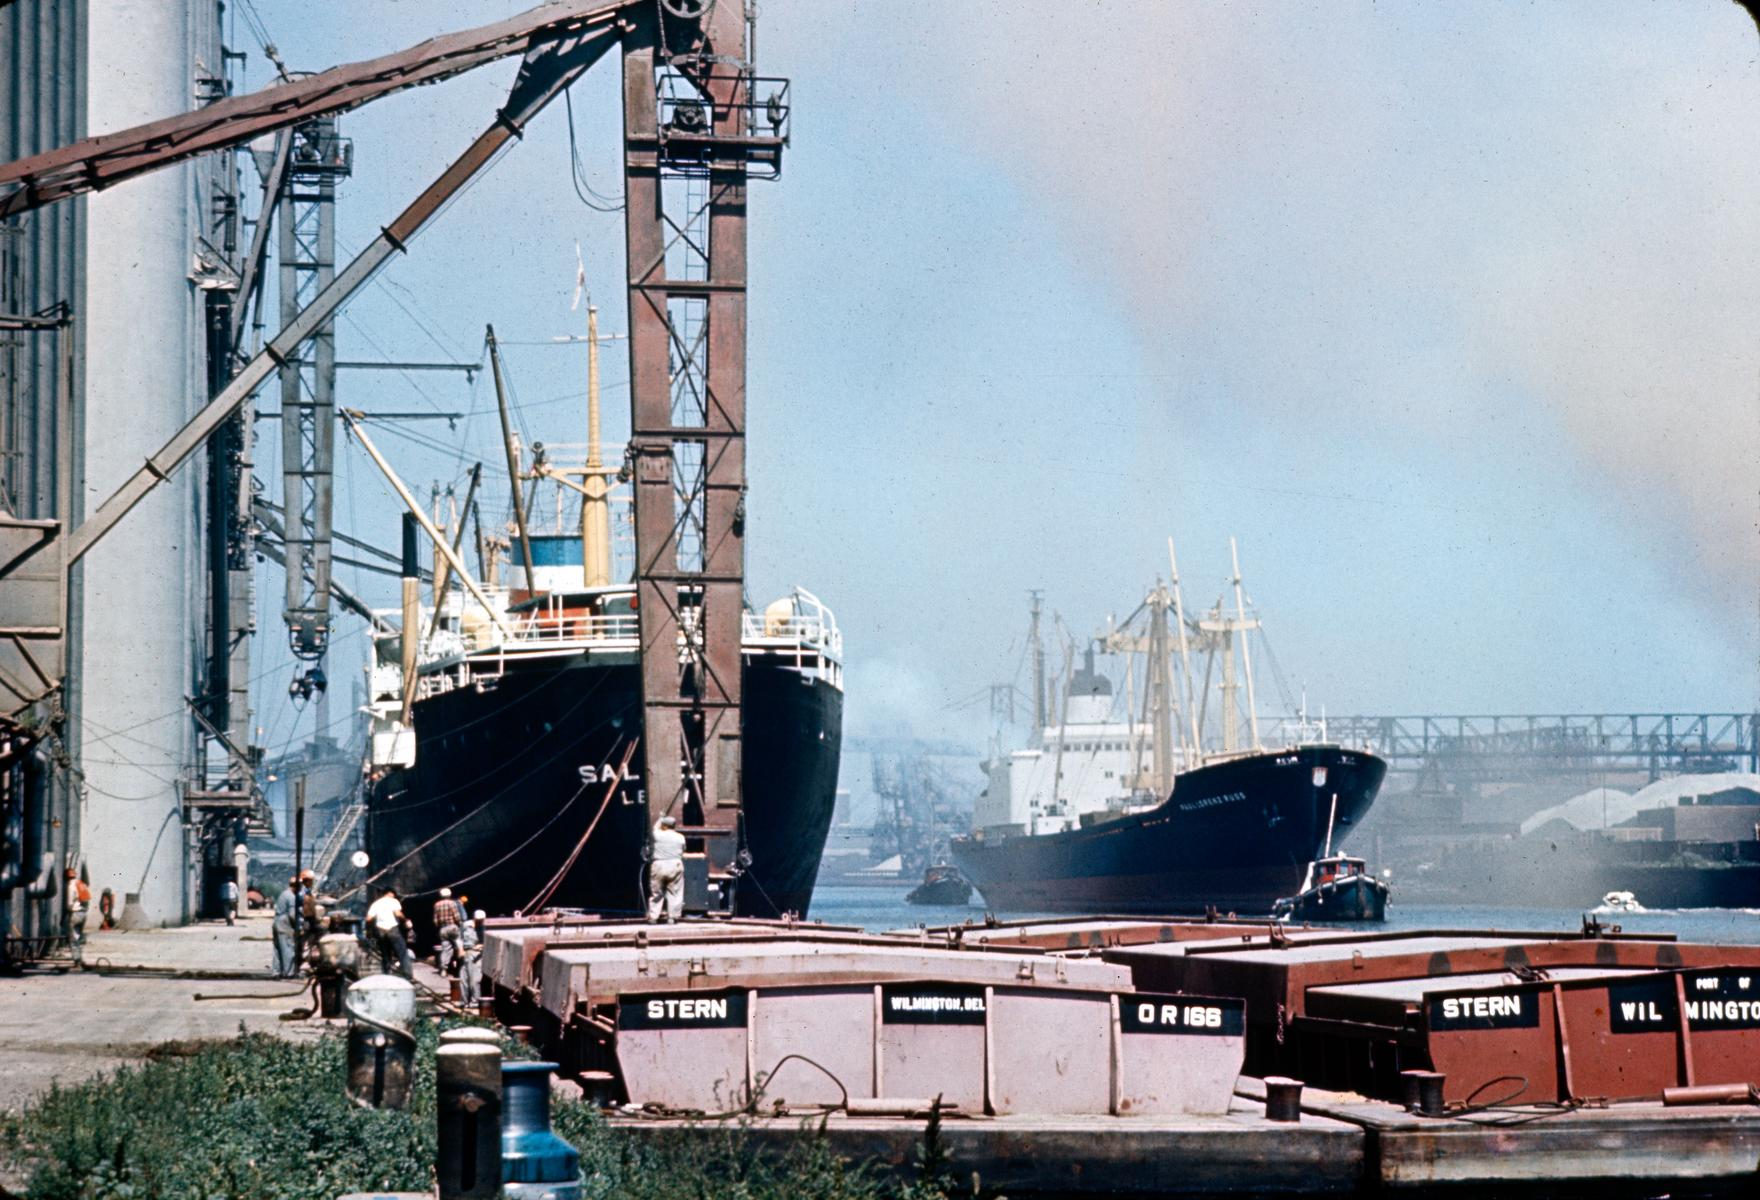 Barges, ships, loading docks and cargo-handling facilities at the Port of Chicago in 1969, during the heyday of Great Lakes shipping. (Courtesy C. William Brubaker Collection, bru012_10_dF, Special Collections, University of Illinois at Chicago Library)